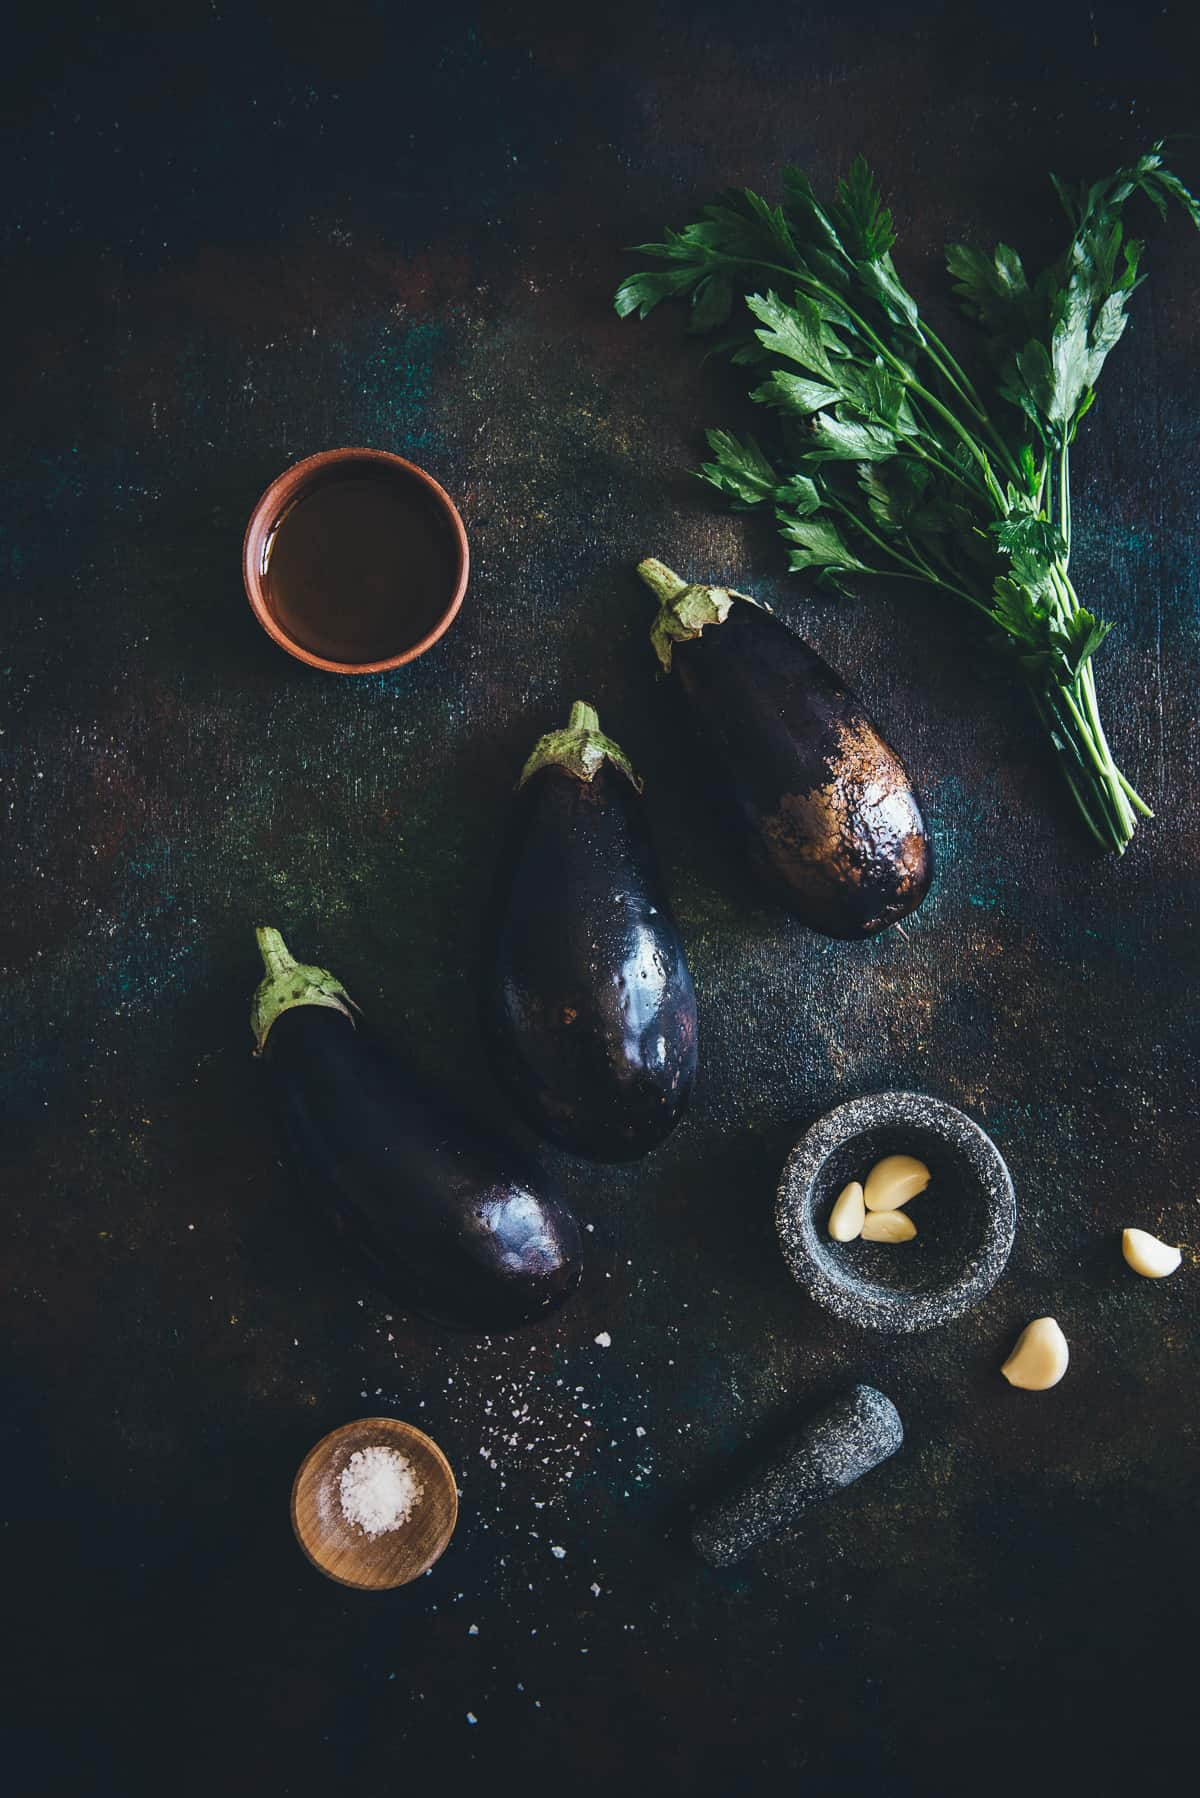 eggplants and herbs on a table